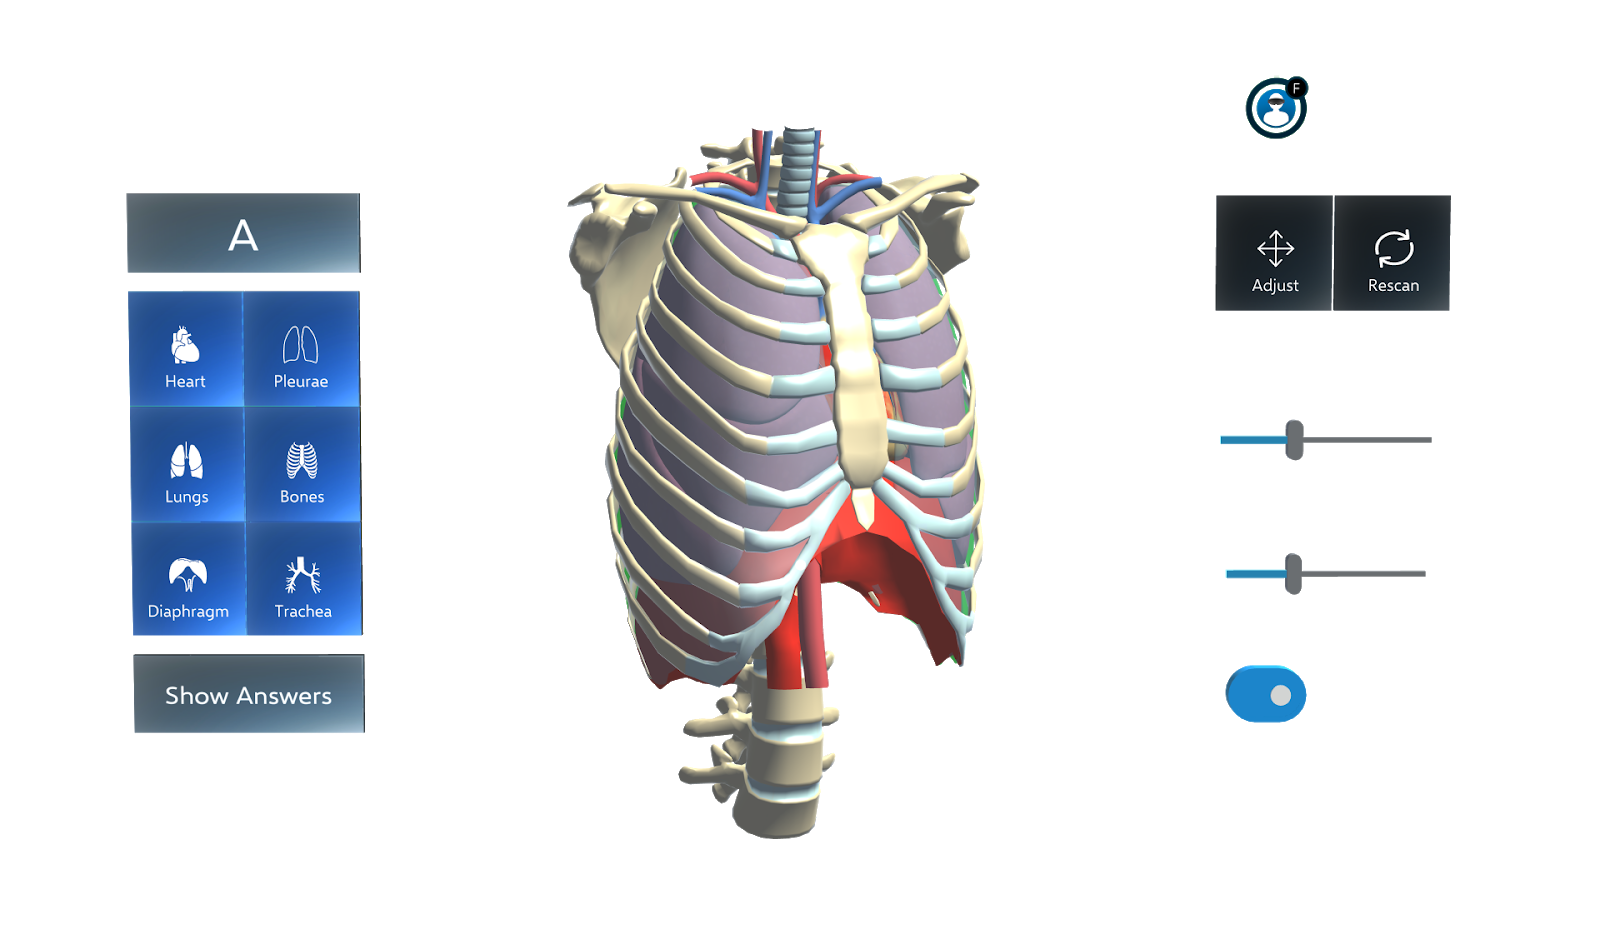 Impression of the Augmedicine, Lung Cases' visual user interface